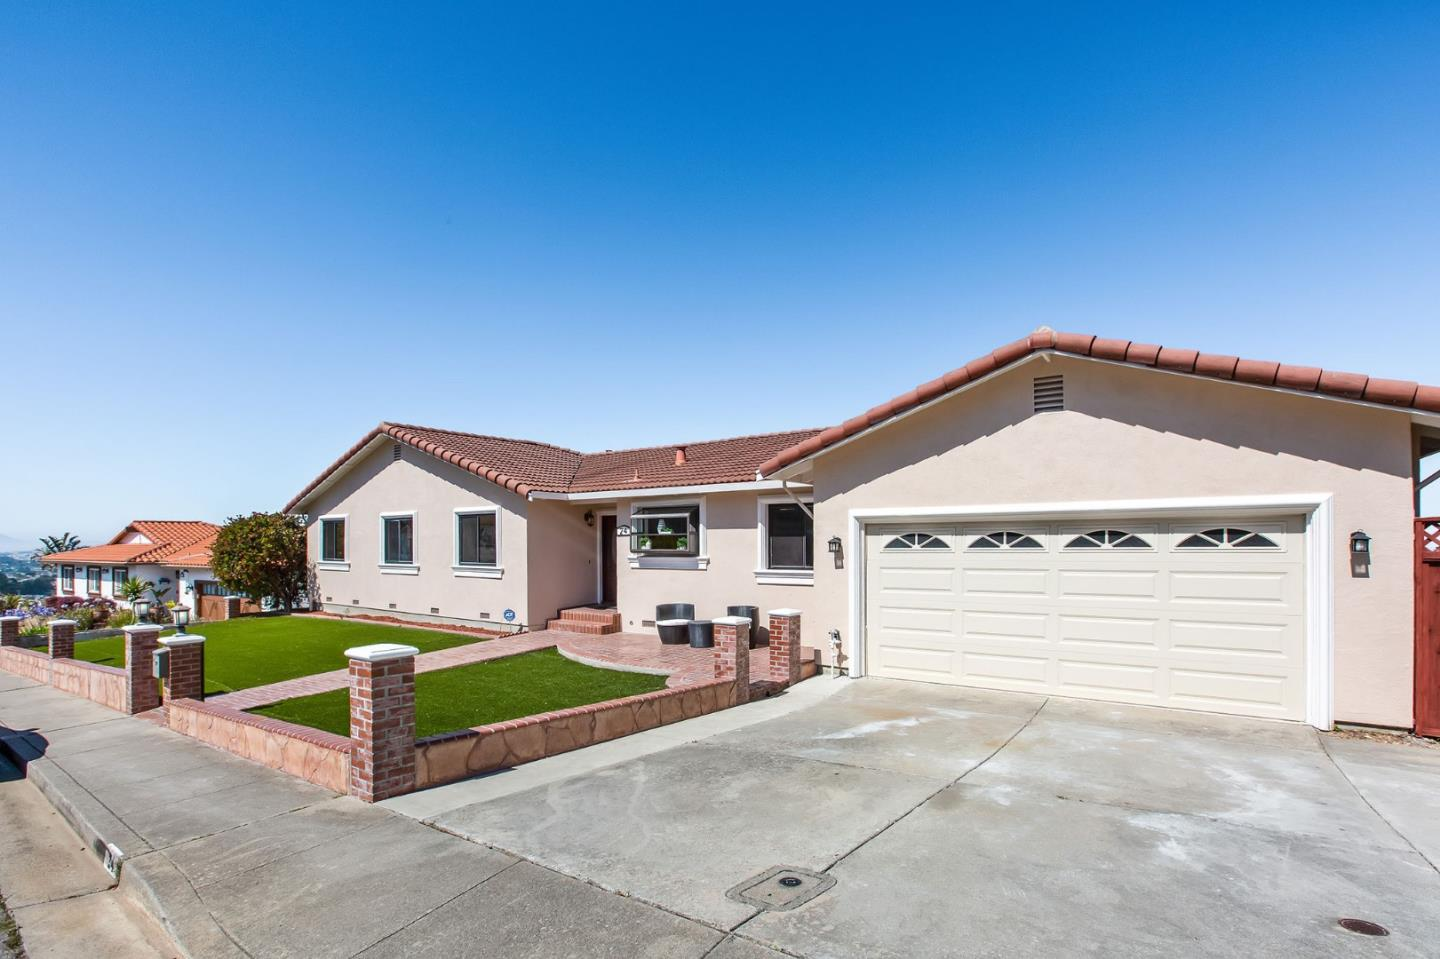 Detail Gallery Image 1 of 1 For 24 Vista Ct, South San Francisco, CA 94080 - 4 Beds | 2 Baths